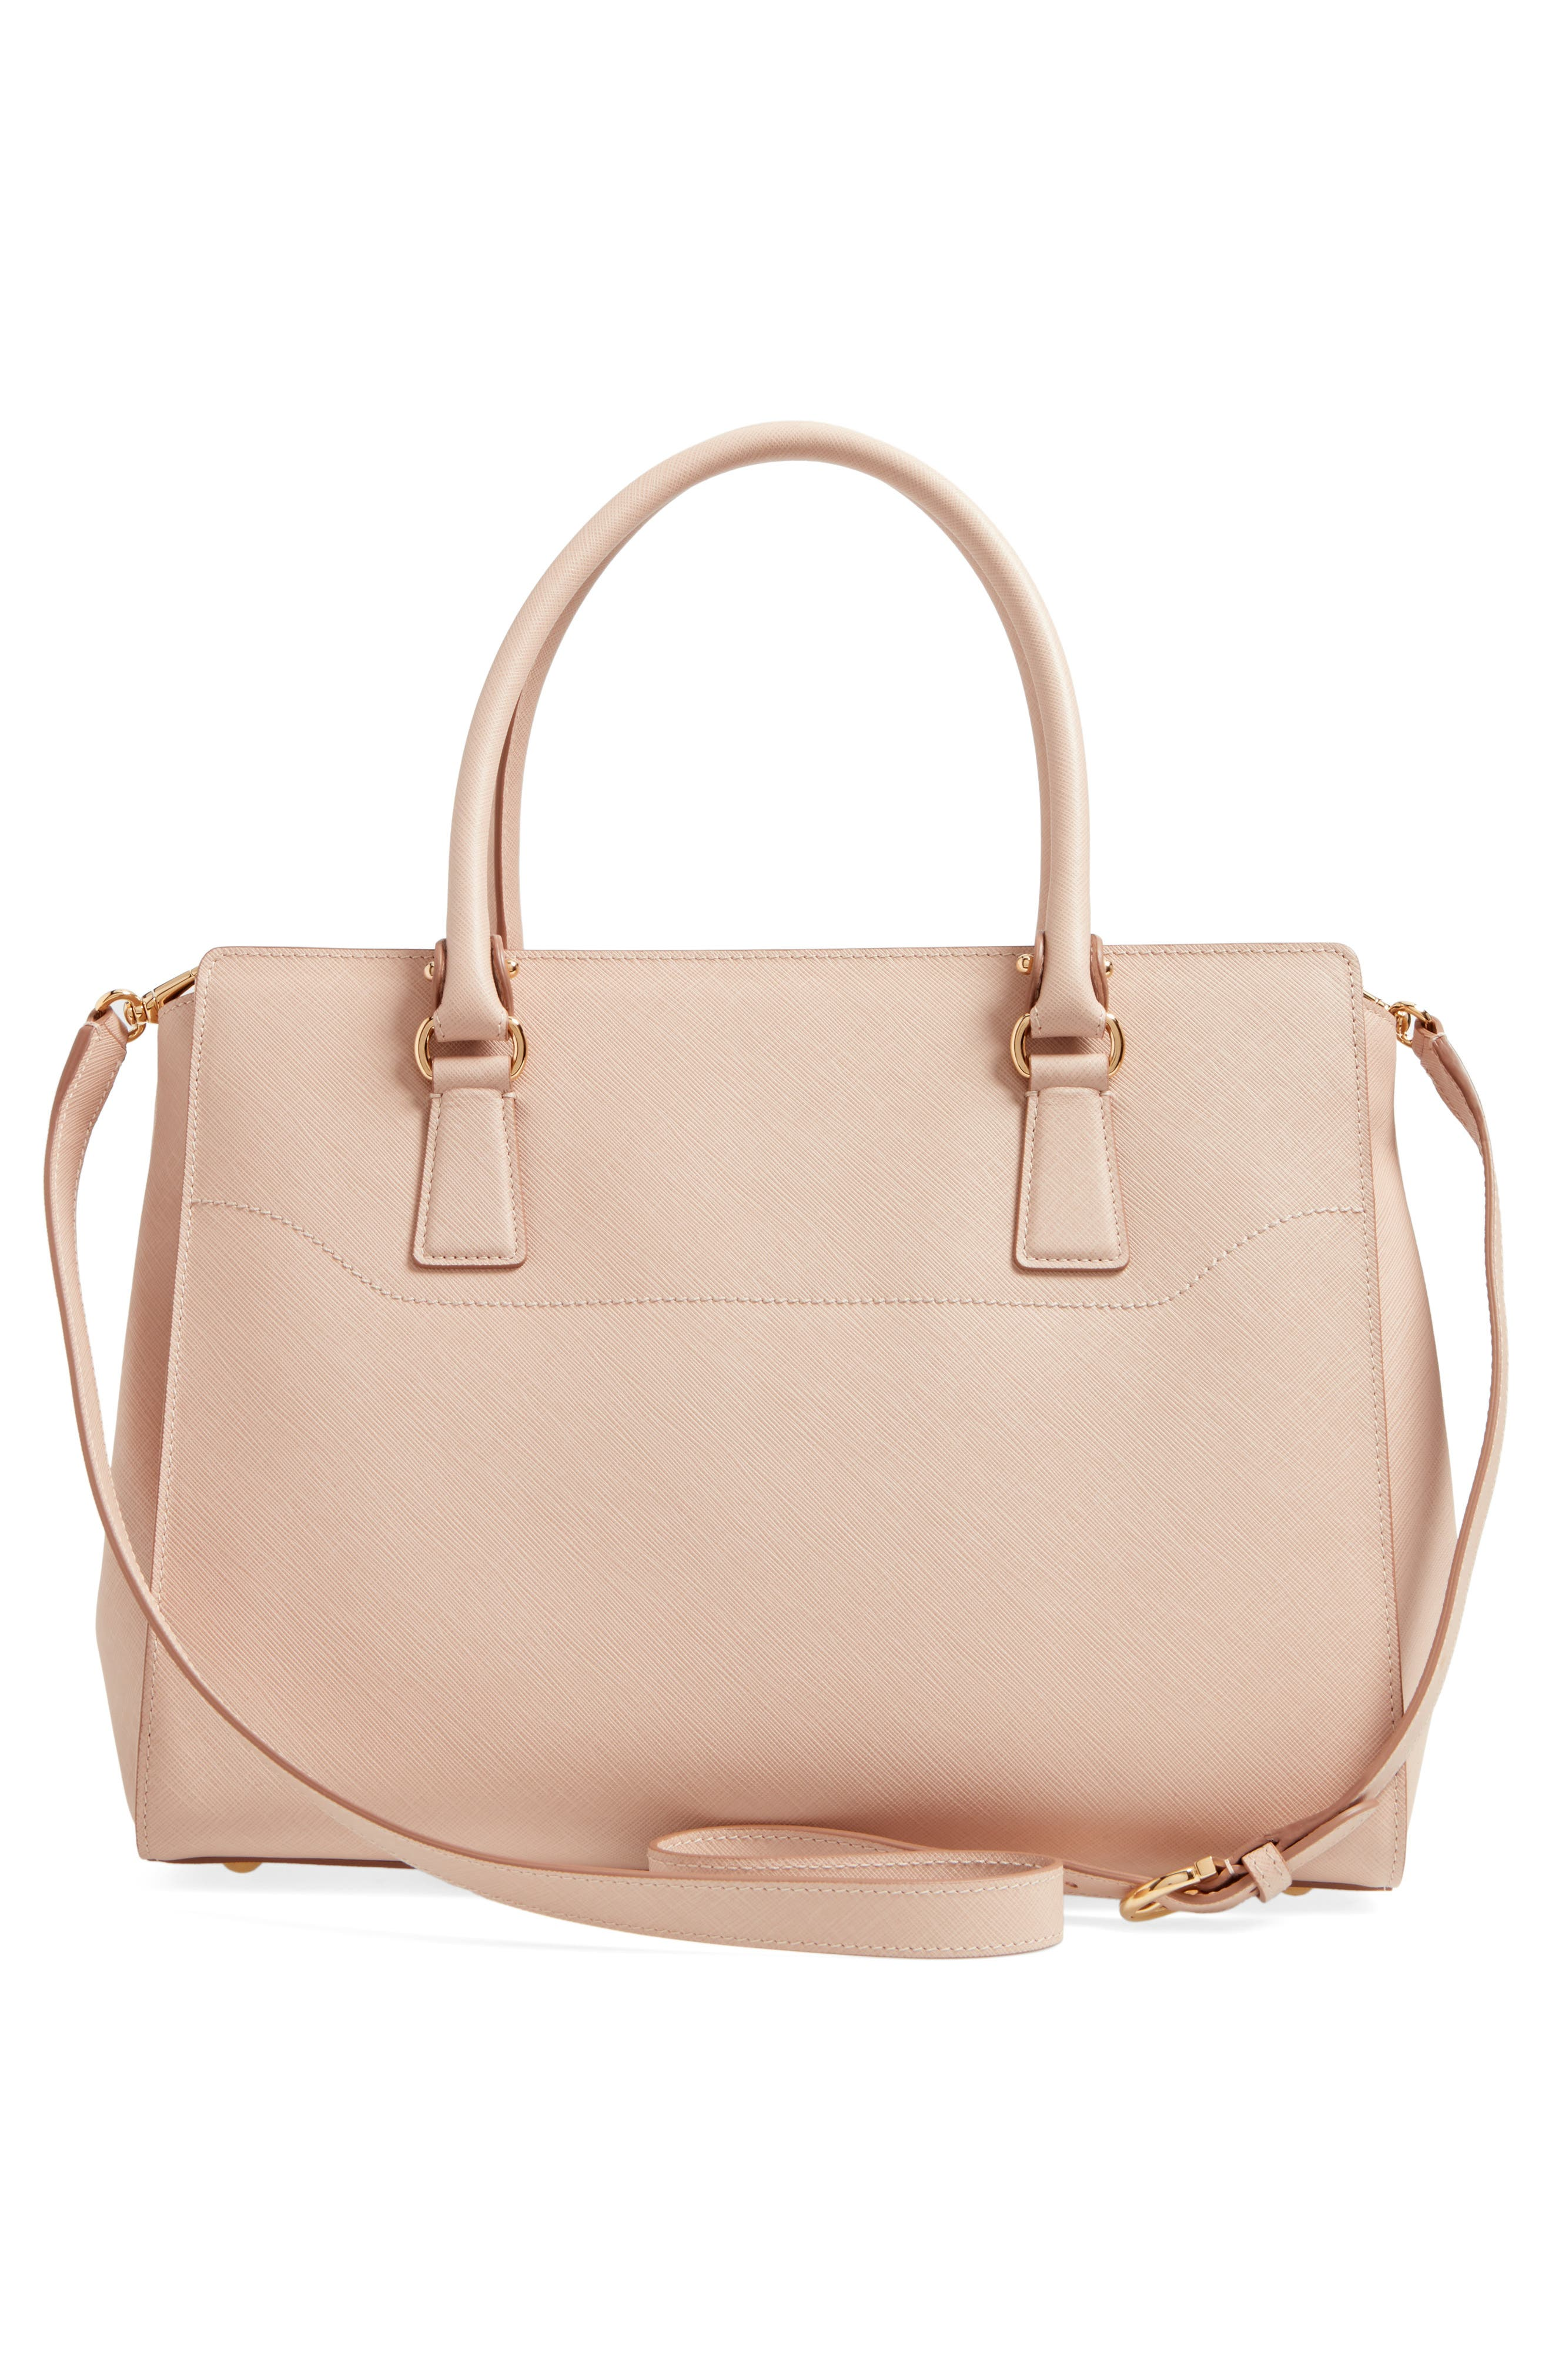 Saffiano Leather Tote,                             Alternate thumbnail 3, color,                             New Bisque Macaron